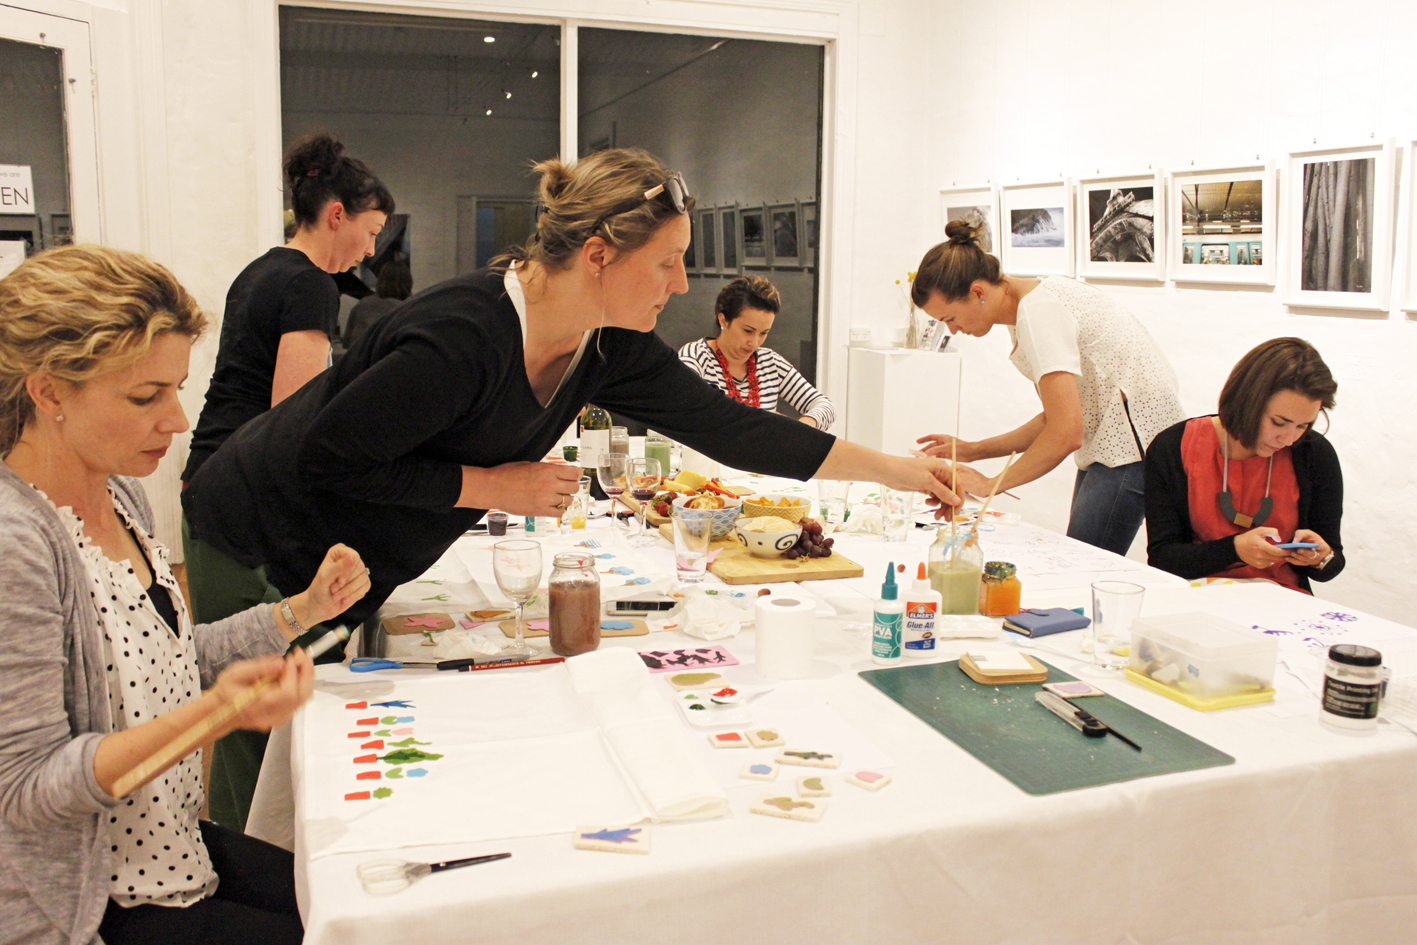 Block Printing Workshop, The Corner Store Gallery, Orange NSW, creative workshops, photograph by Madeline Young